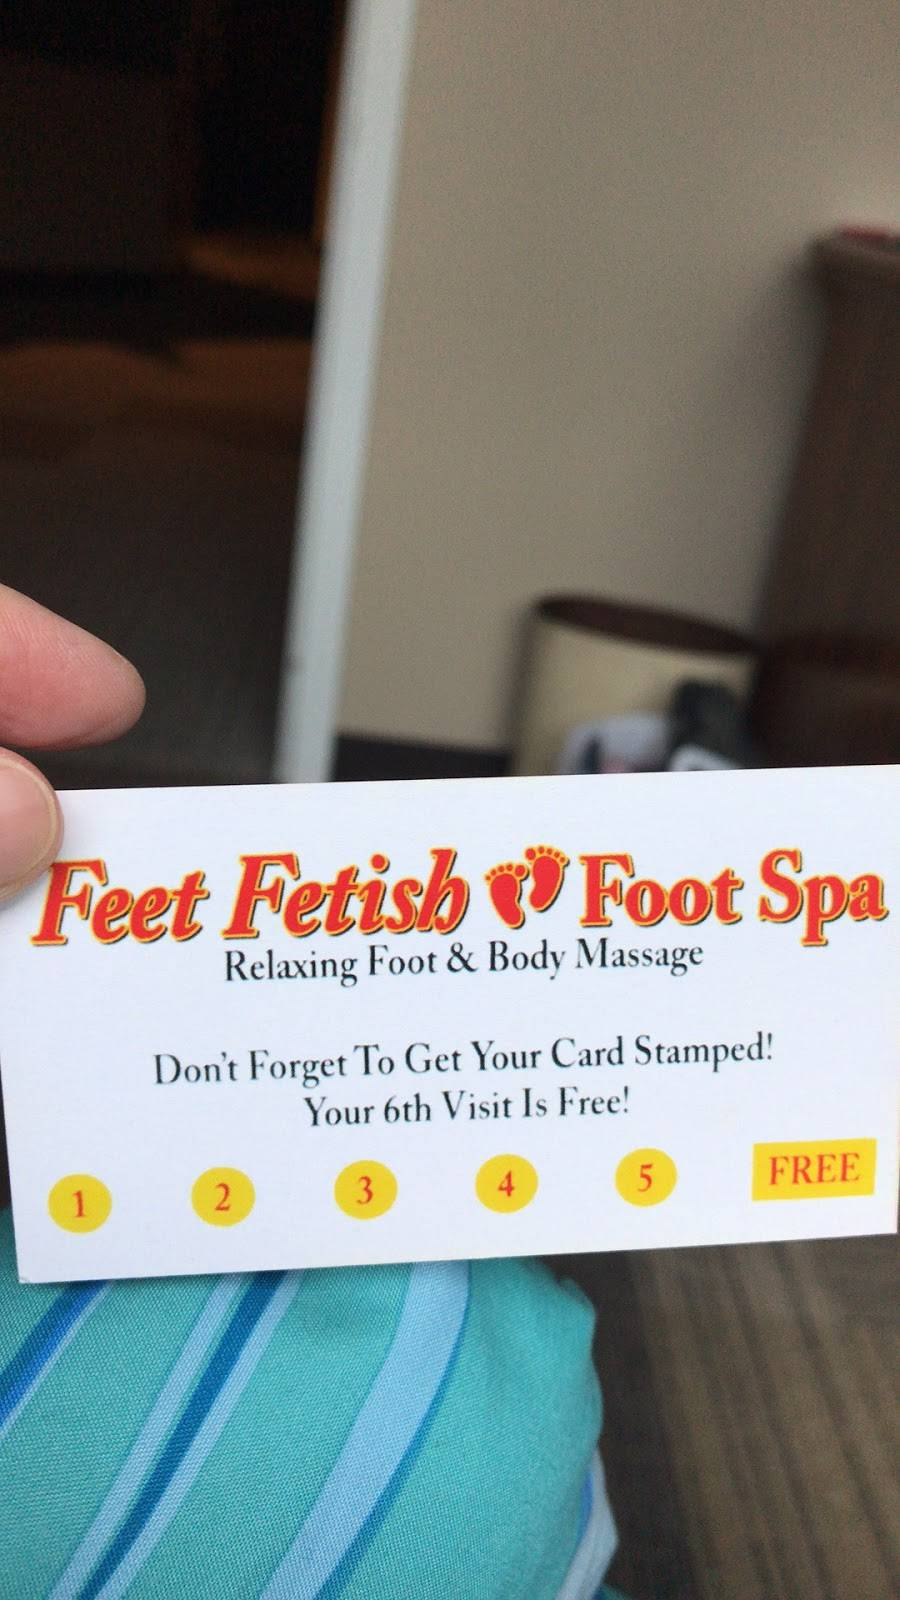 Feet fetish foot spa - spa  | Photo 6 of 7 | Address: 6450 W 10th St #6, Indianapolis, IN 46214, USA | Phone: (317) 892-8181